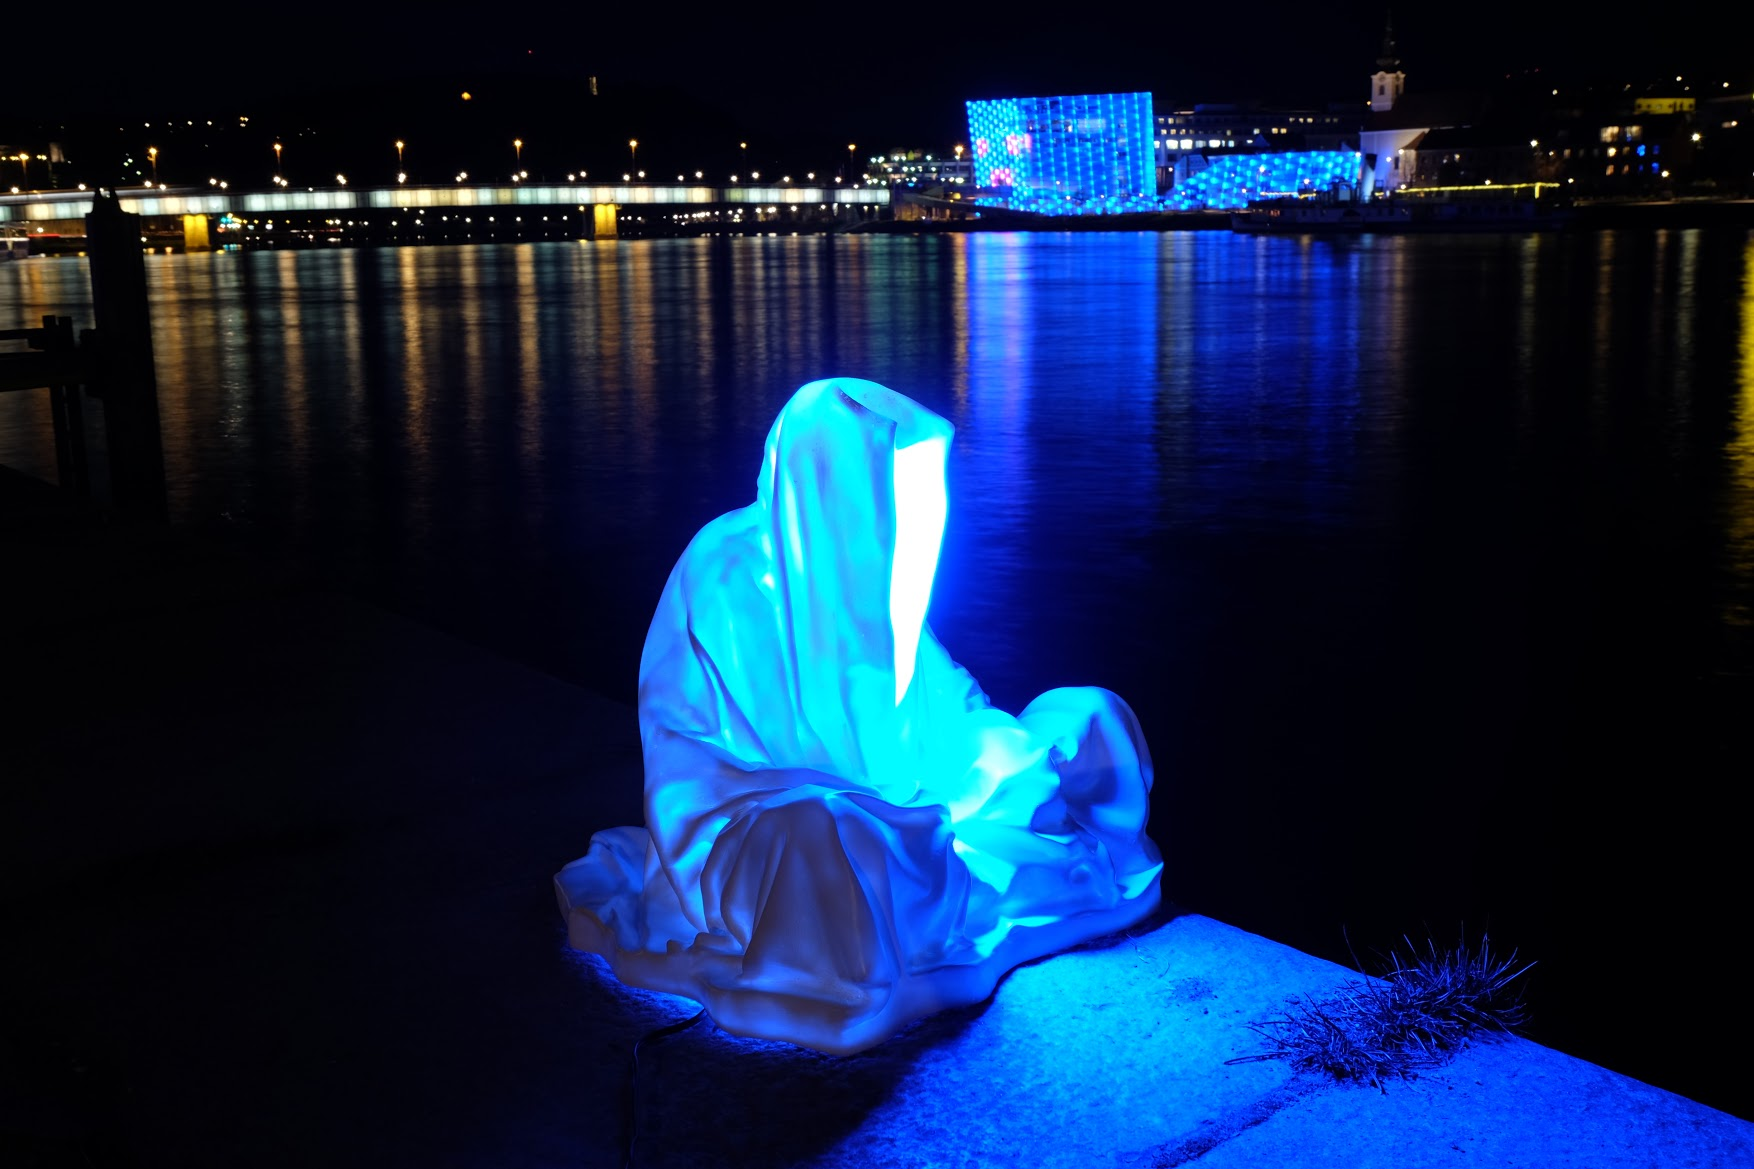 guardians of time manfred kielnhofer linz light art contemporary art sculpture statue modern design lamp light lumina 1790